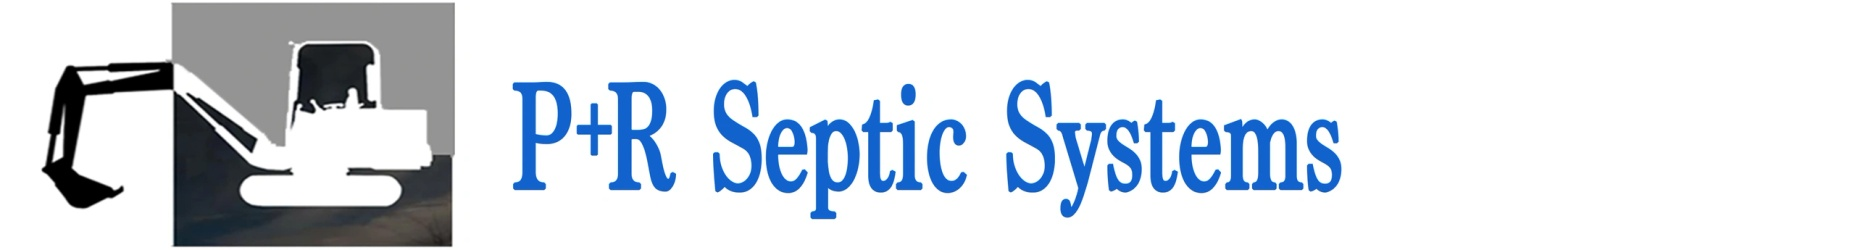 P+R Septic Systems